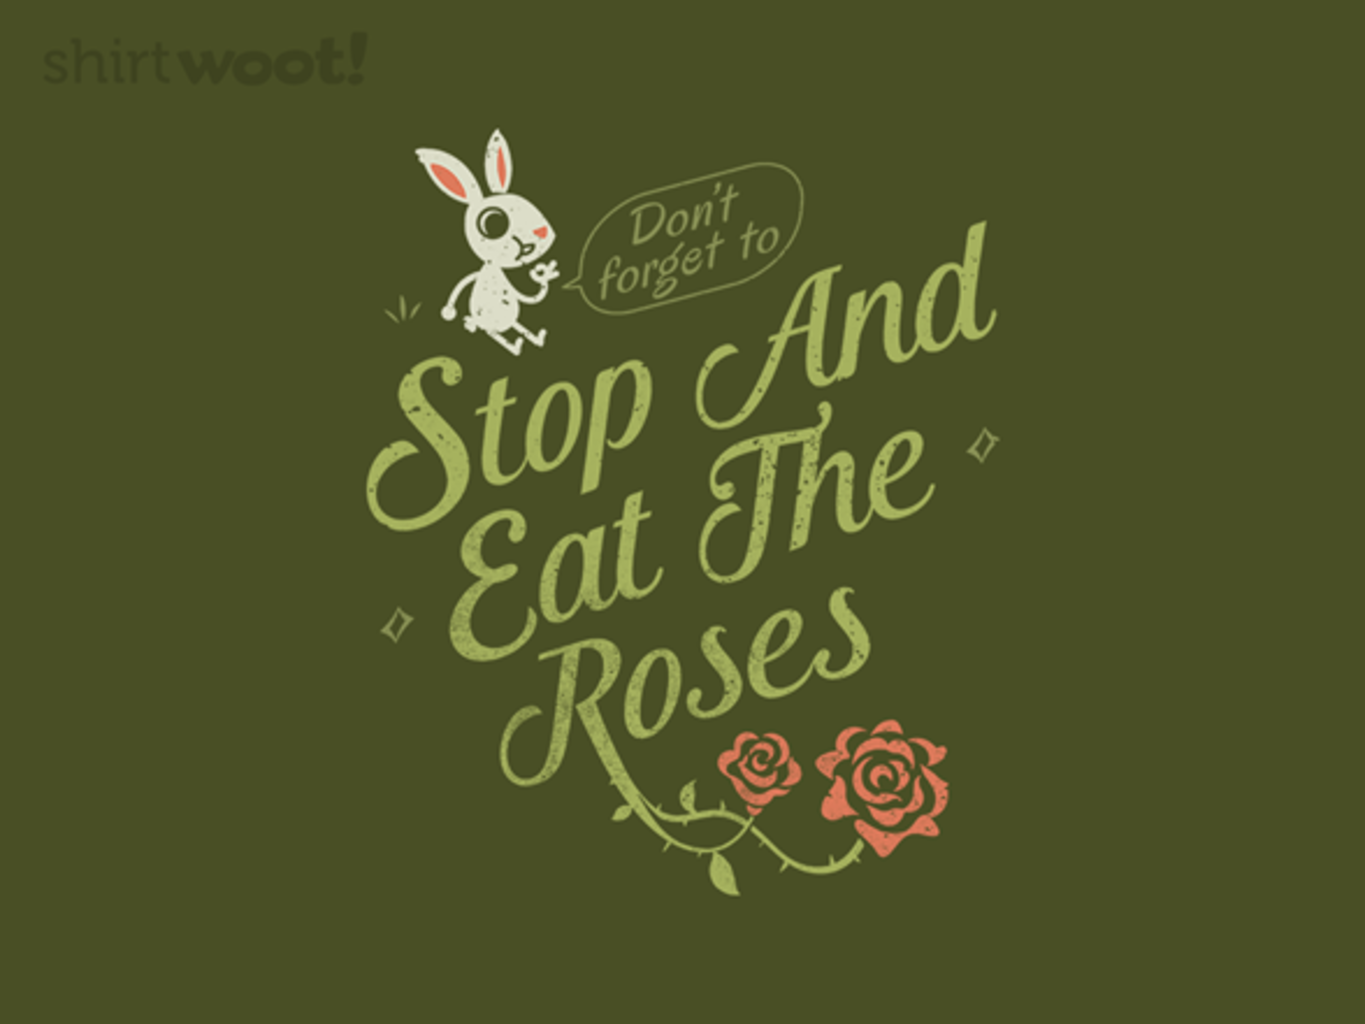 Woot!: Stop and Eat the Roses